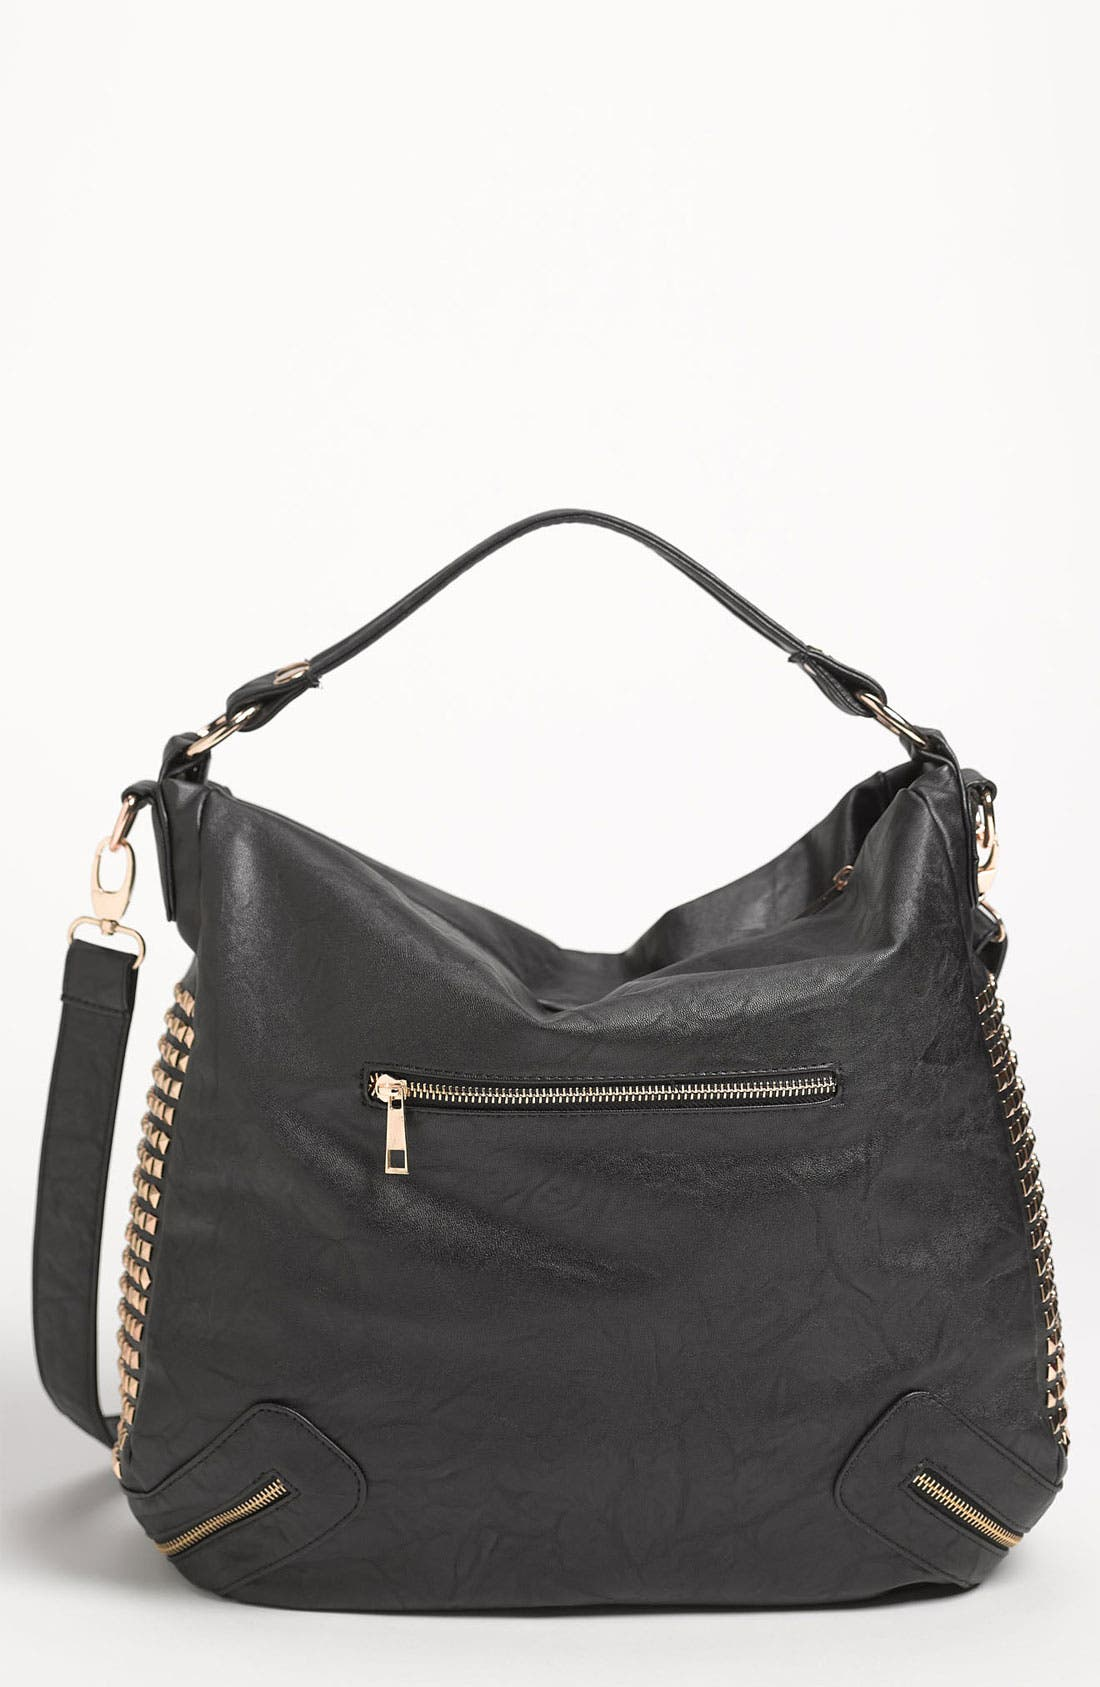 Alternate Image 1 Selected - Top Choice Studded Convertible Hobo Bag